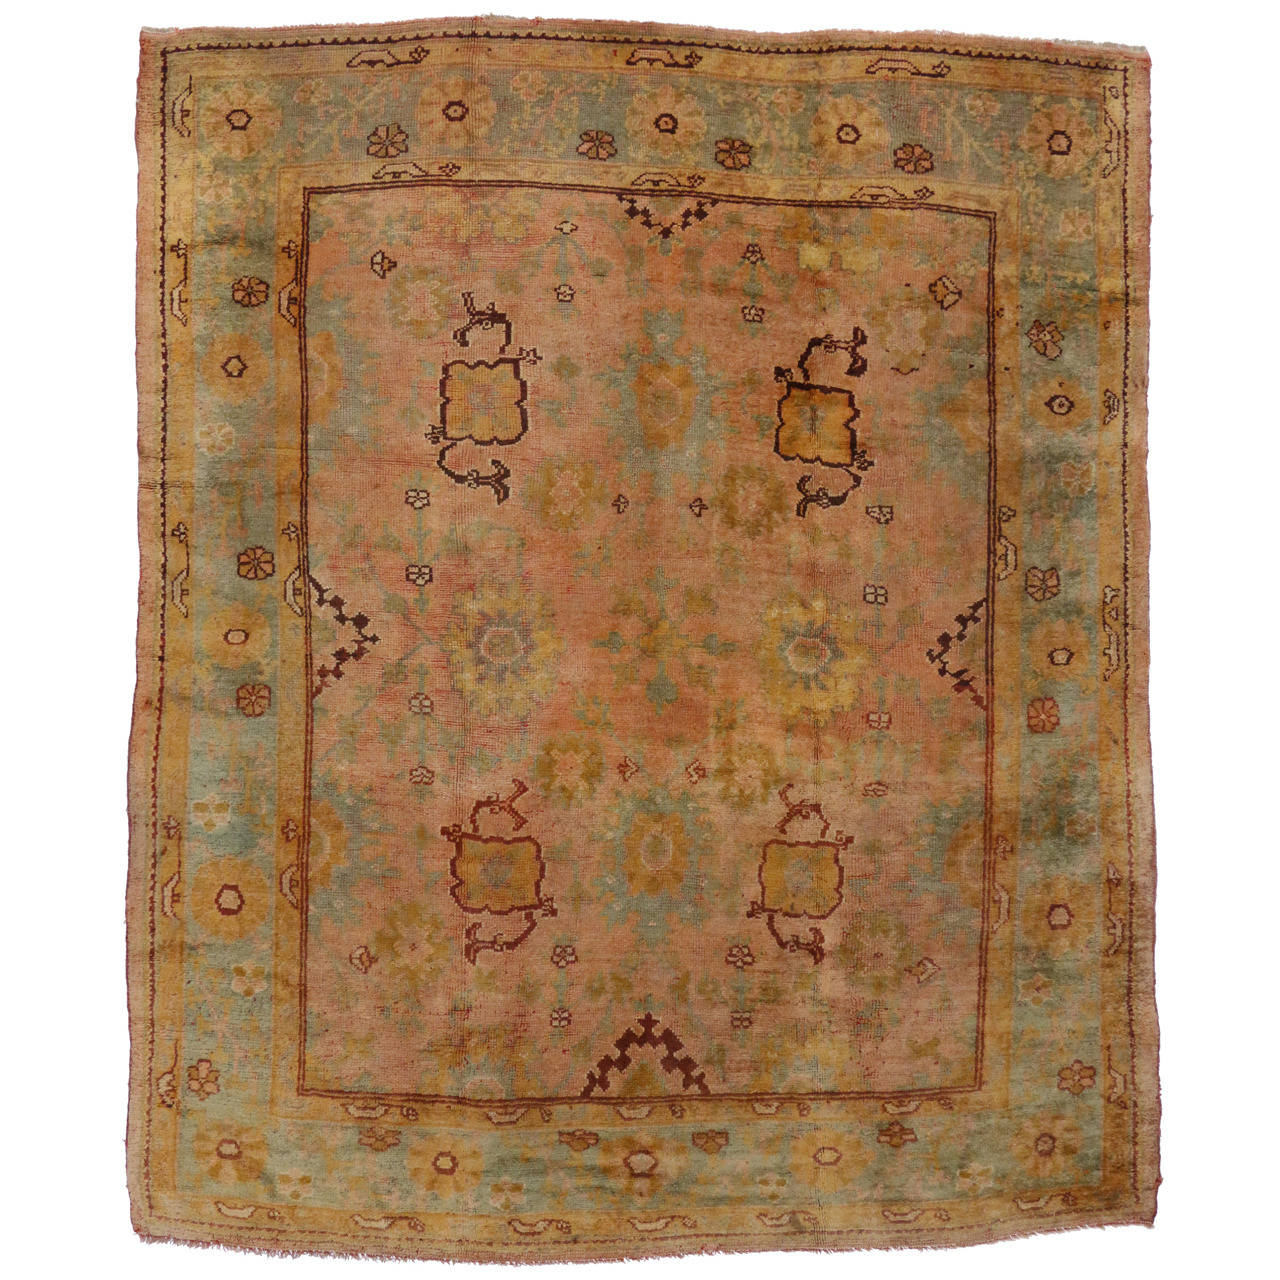 Modern Rugs Vintage: Antique Turkish Oushak Area Rug With Modern Style In Time